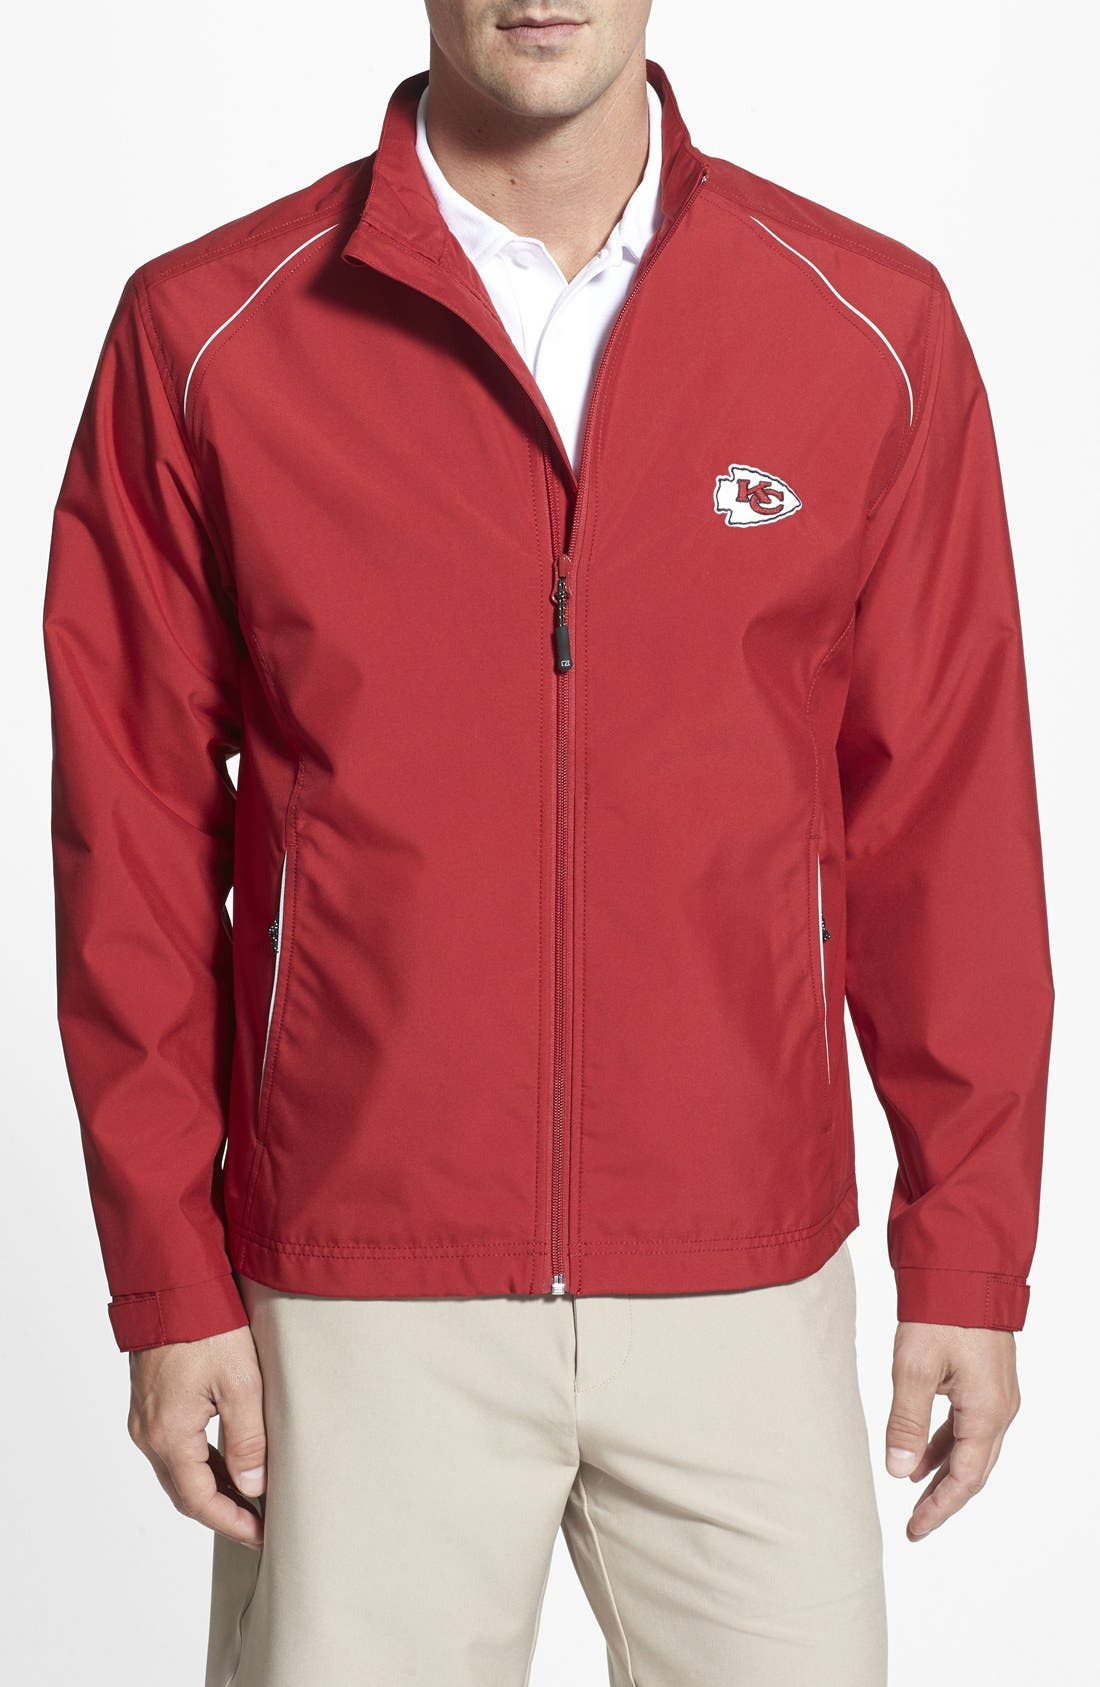 Cutter & Buck Kansas City Chiefs - Beacon WeatherTec Wind & Water Resistant Jacket